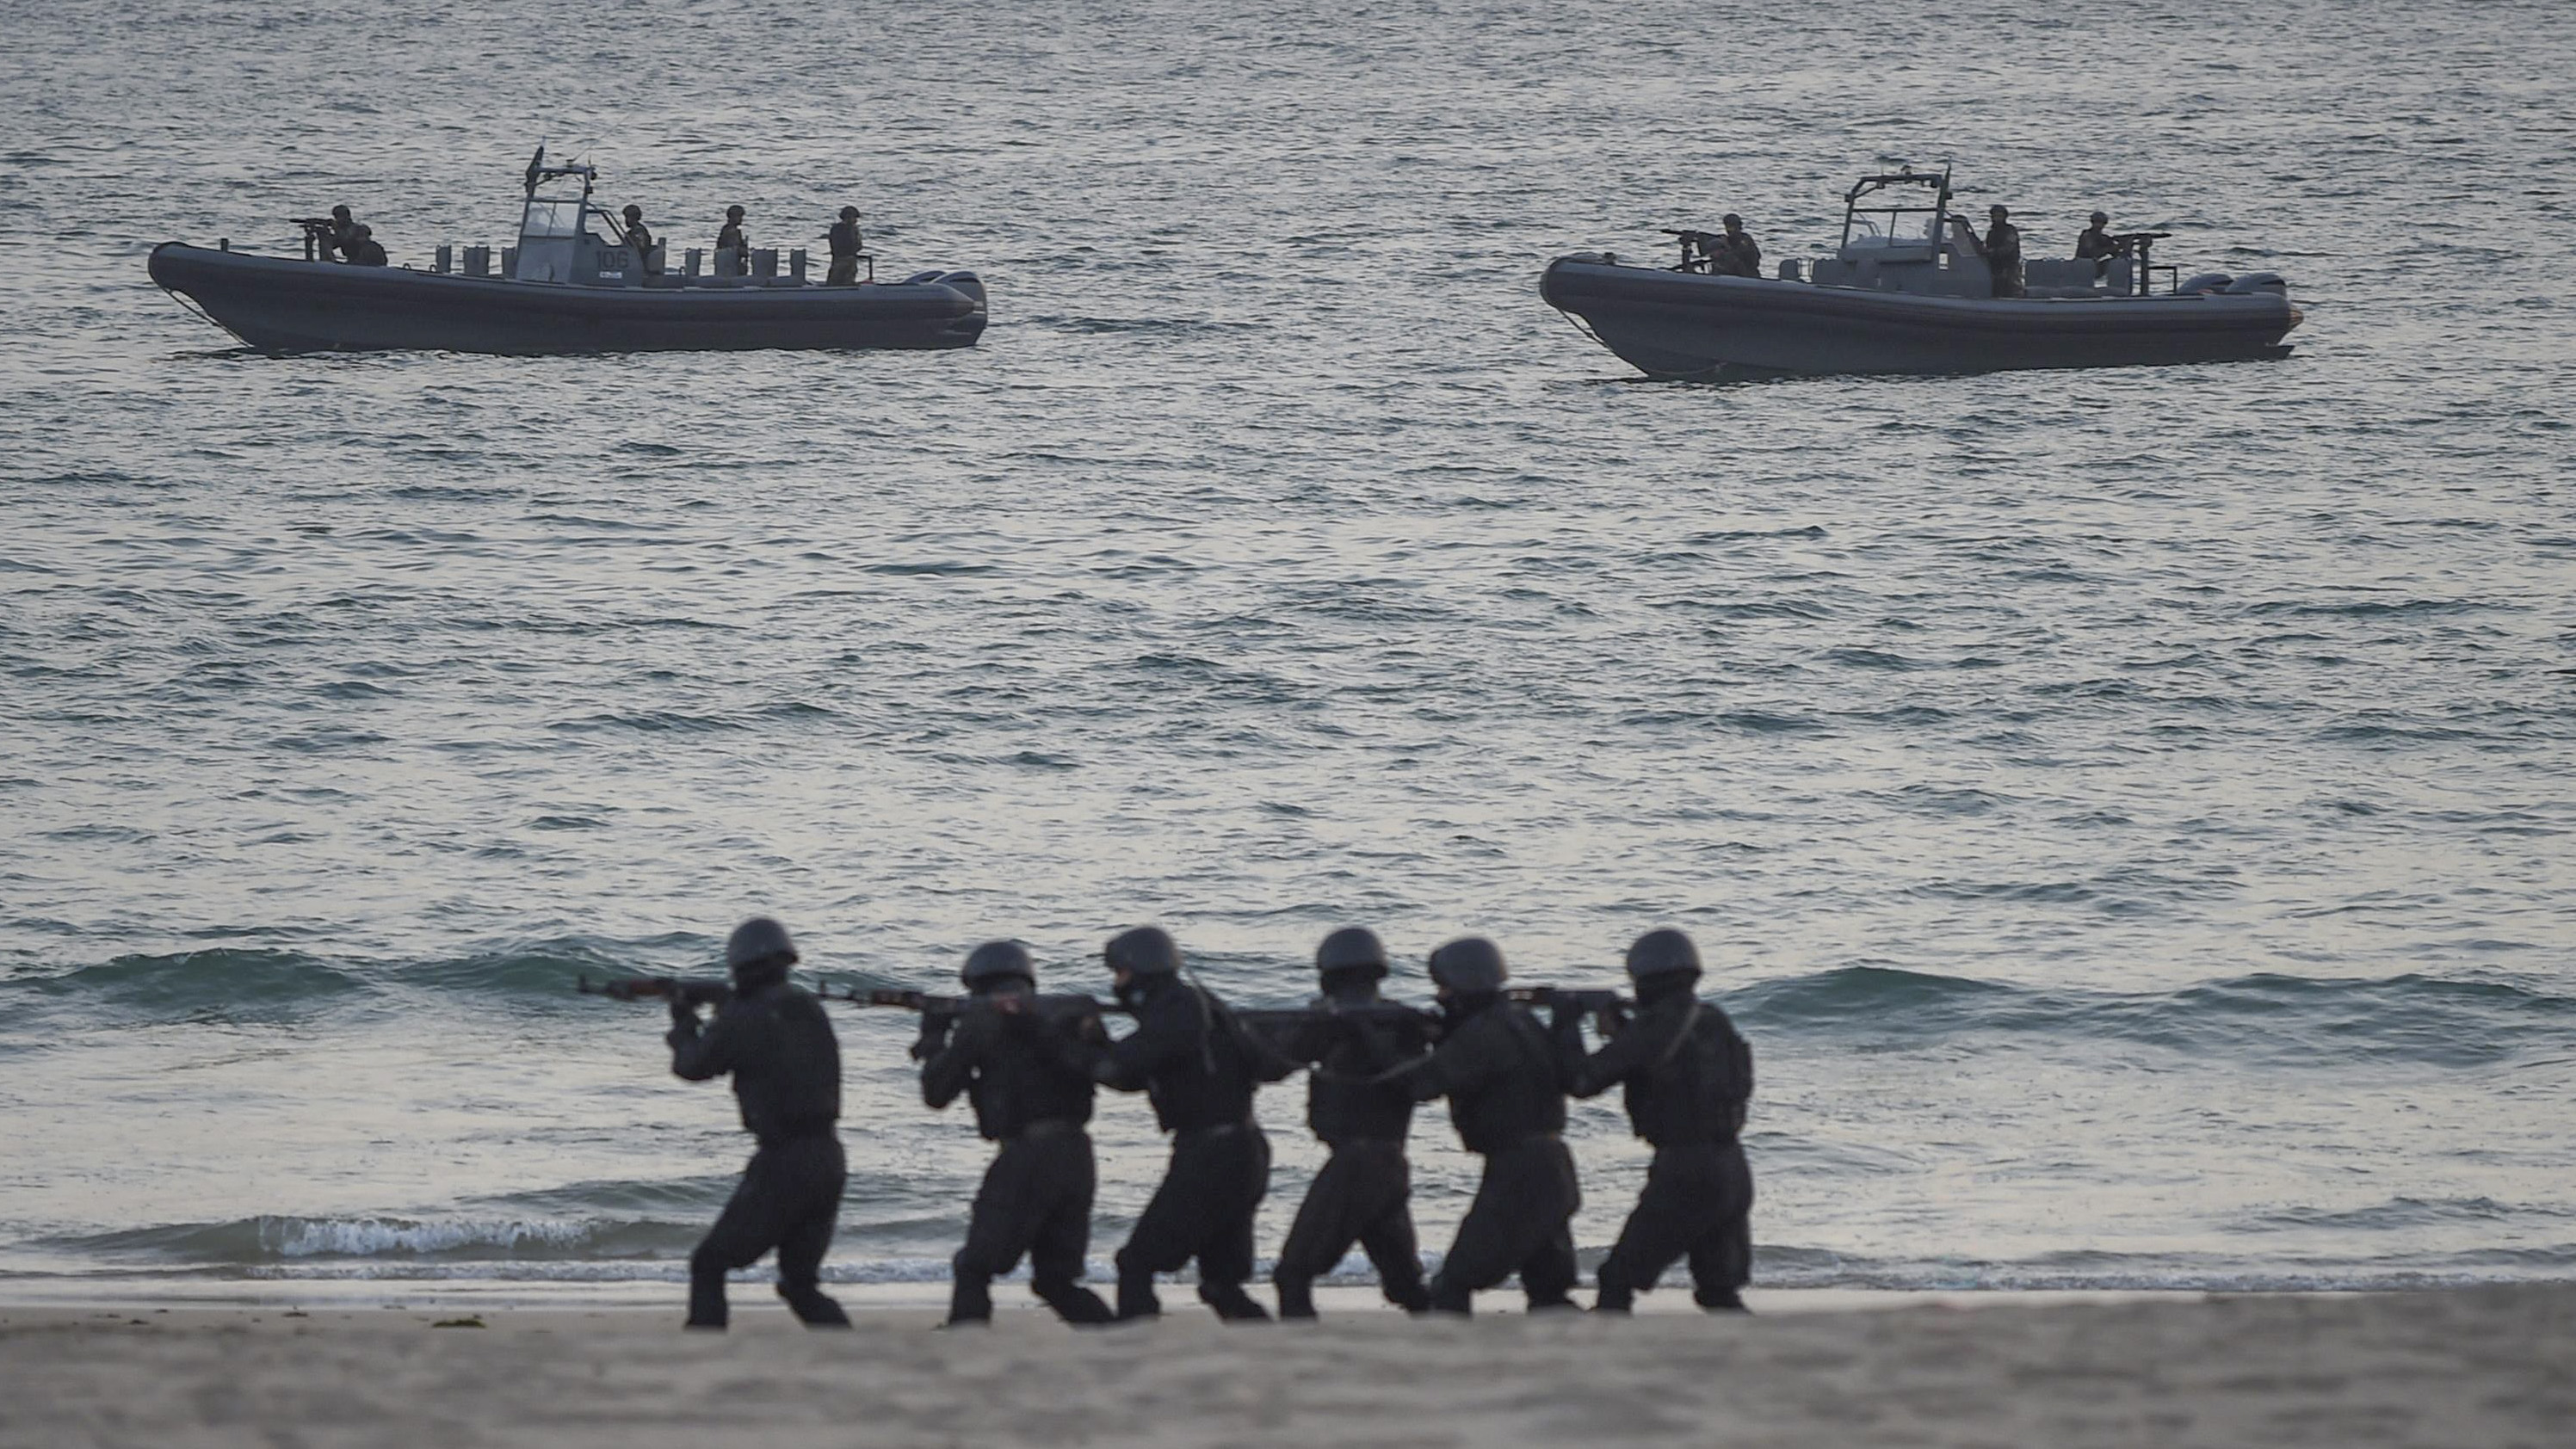 Pakistan Special Services Group Navy commandos take part in the navy's Multinational Exercise 'AMAN-19' in sea view in Karachi on February 9, 2019. - Exercise Aman is scheduled from February 8 to 12, 2019, in which over 45 countries are participating with ships and observers. (RIZWAN TABASSUM/AFP/Getty Images)